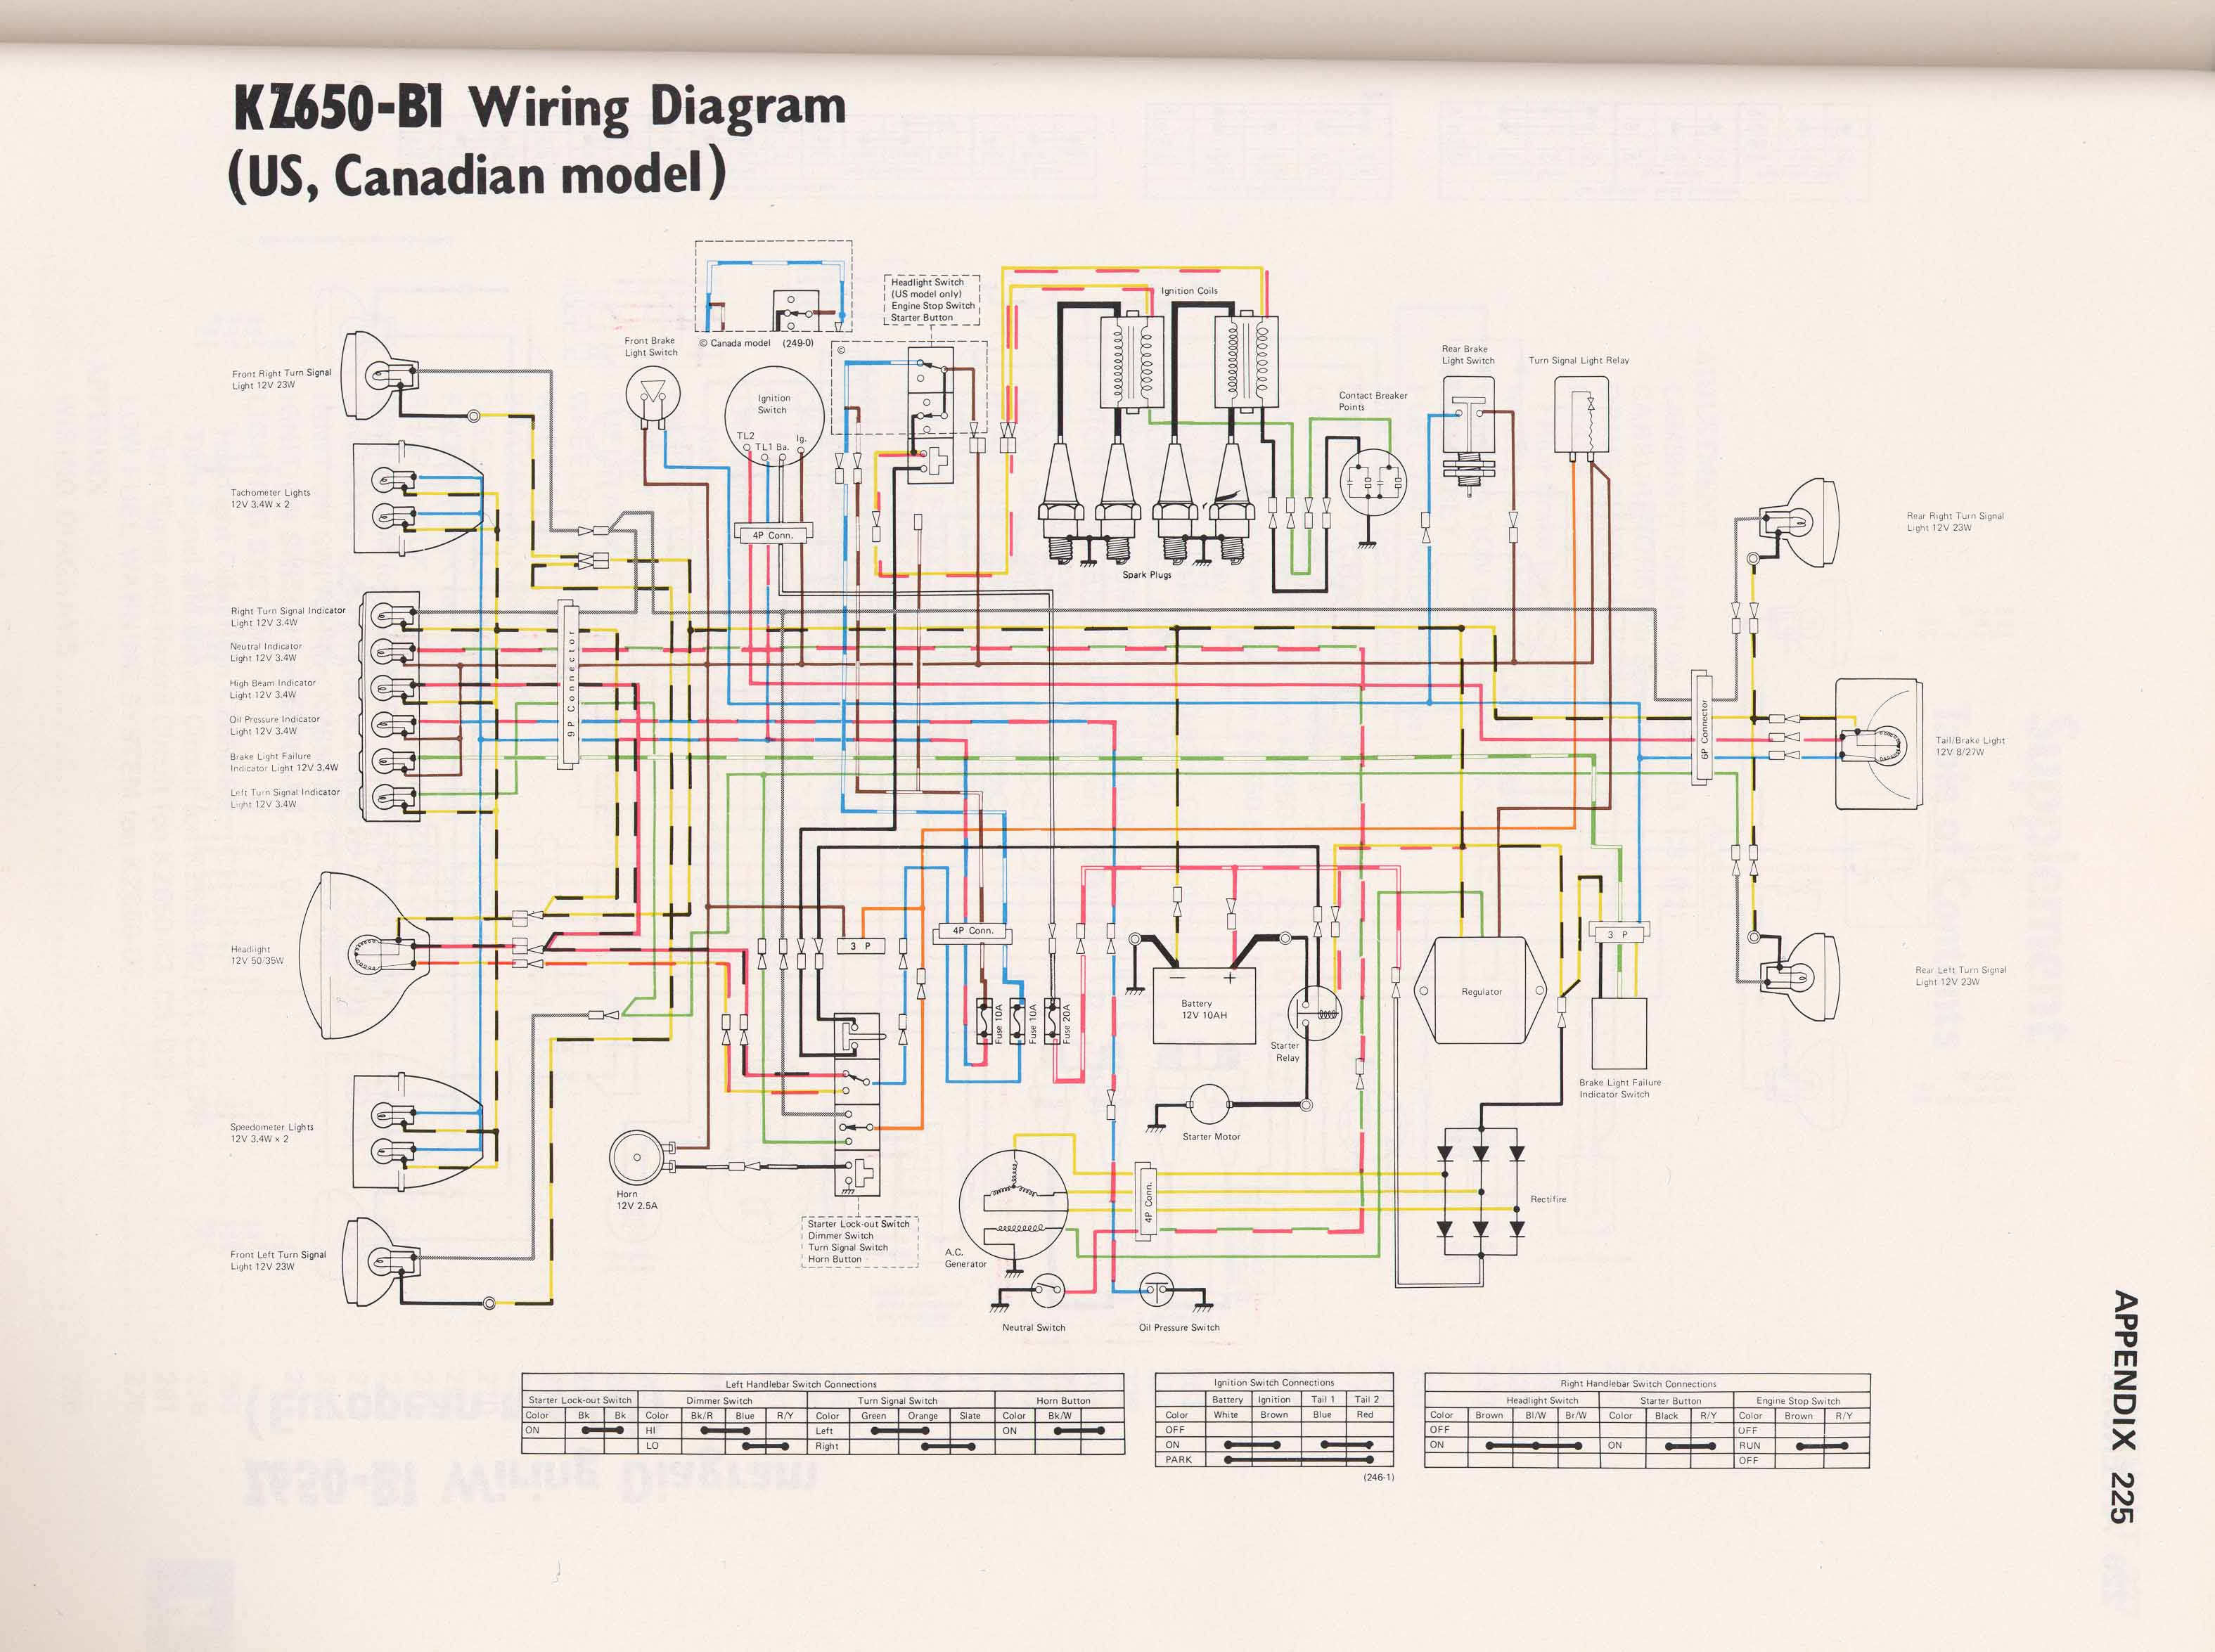 KZ650 B1 kz650 info 3 Wire Headlight Wiring Diagram at honlapkeszites.co